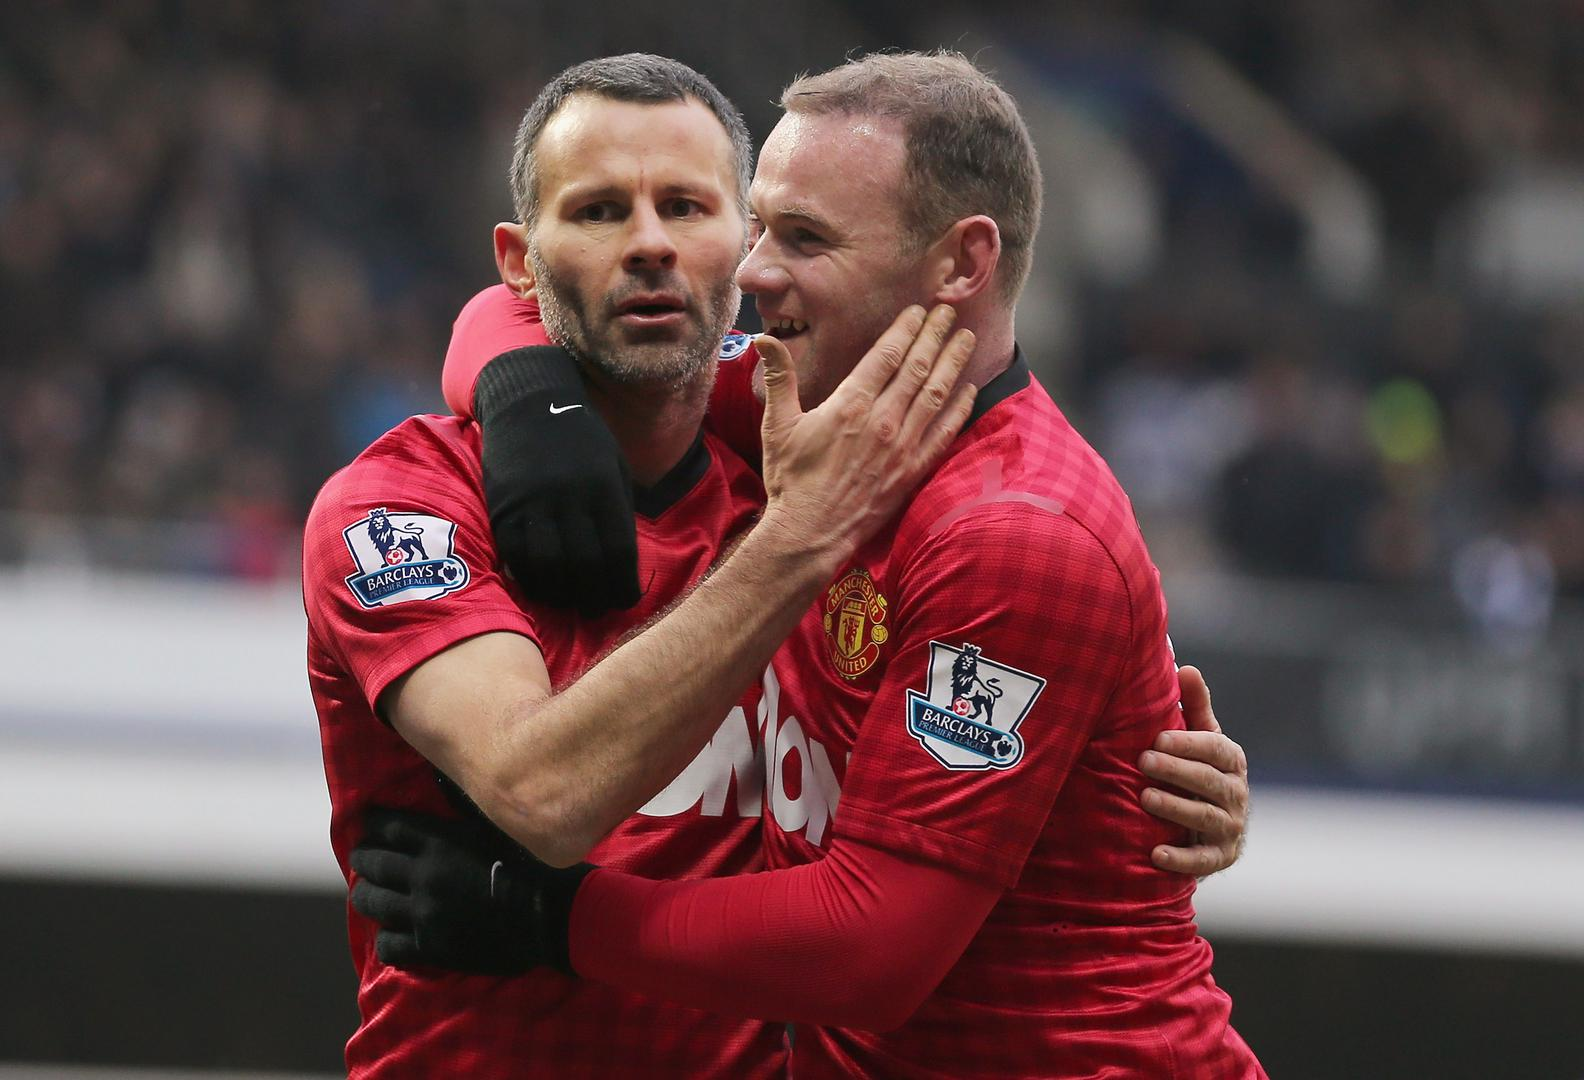 Ryan Giggs and Wayne Rooney.